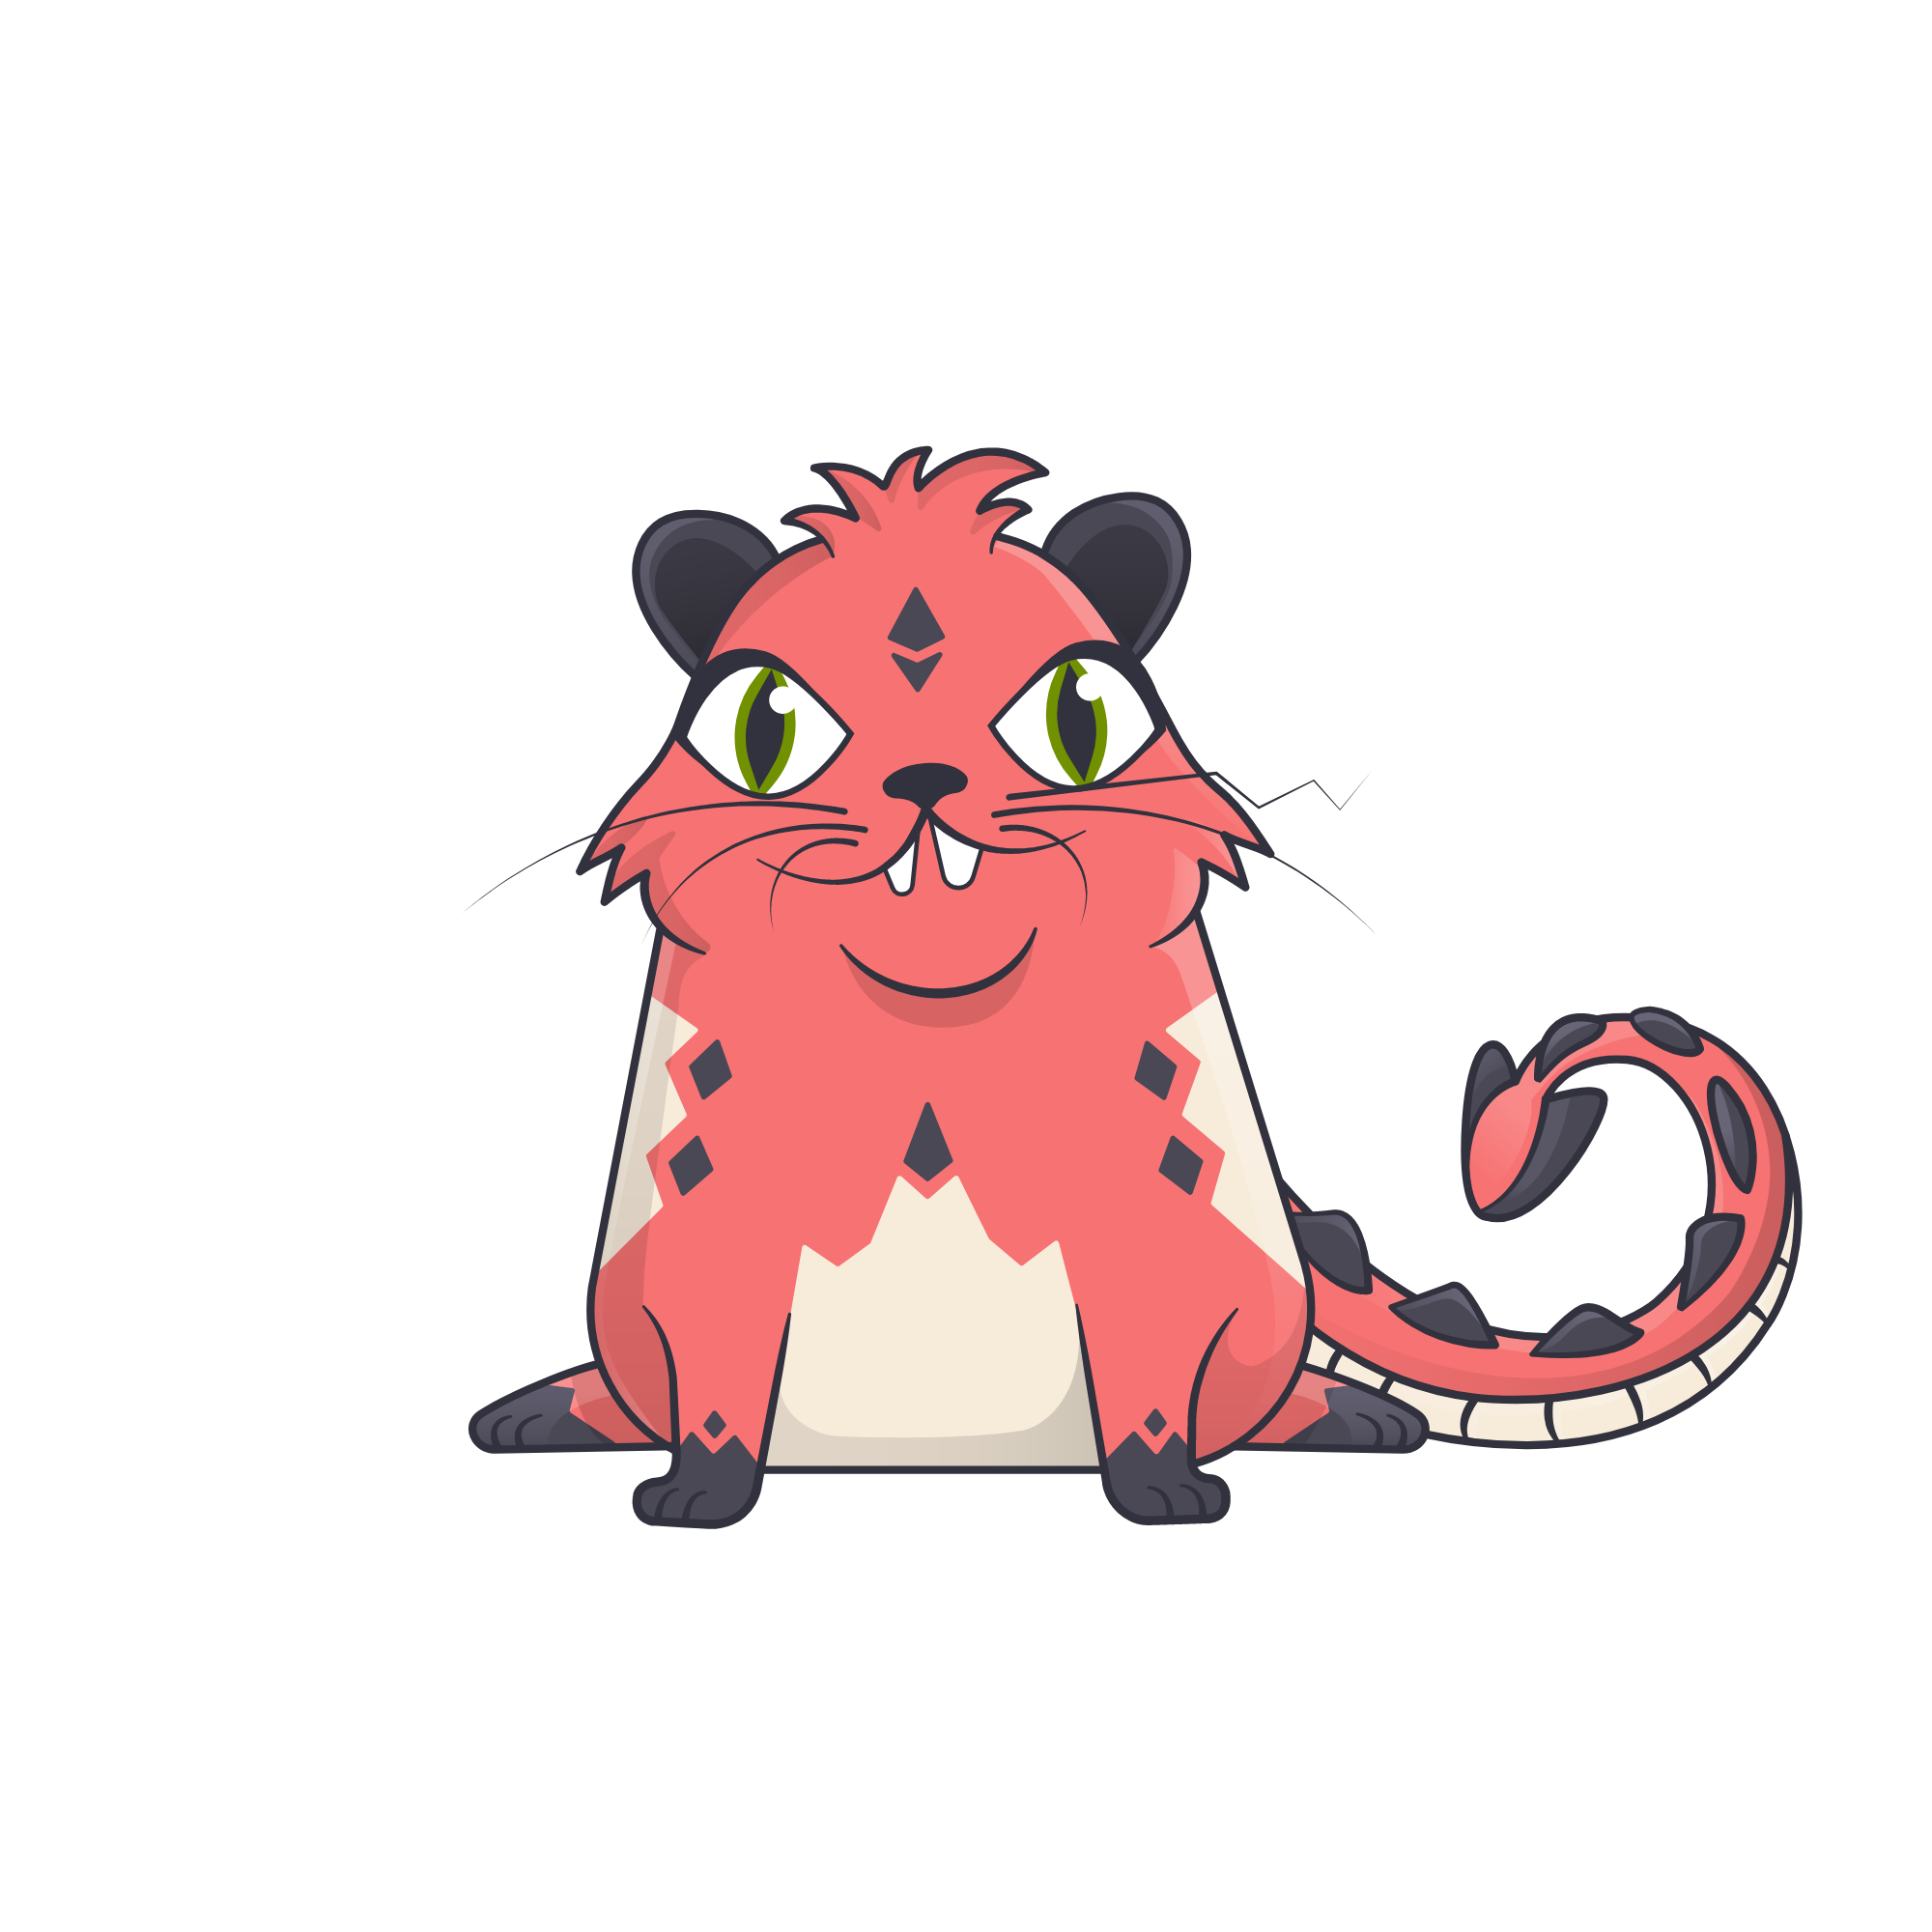 cryptokitty #1632805